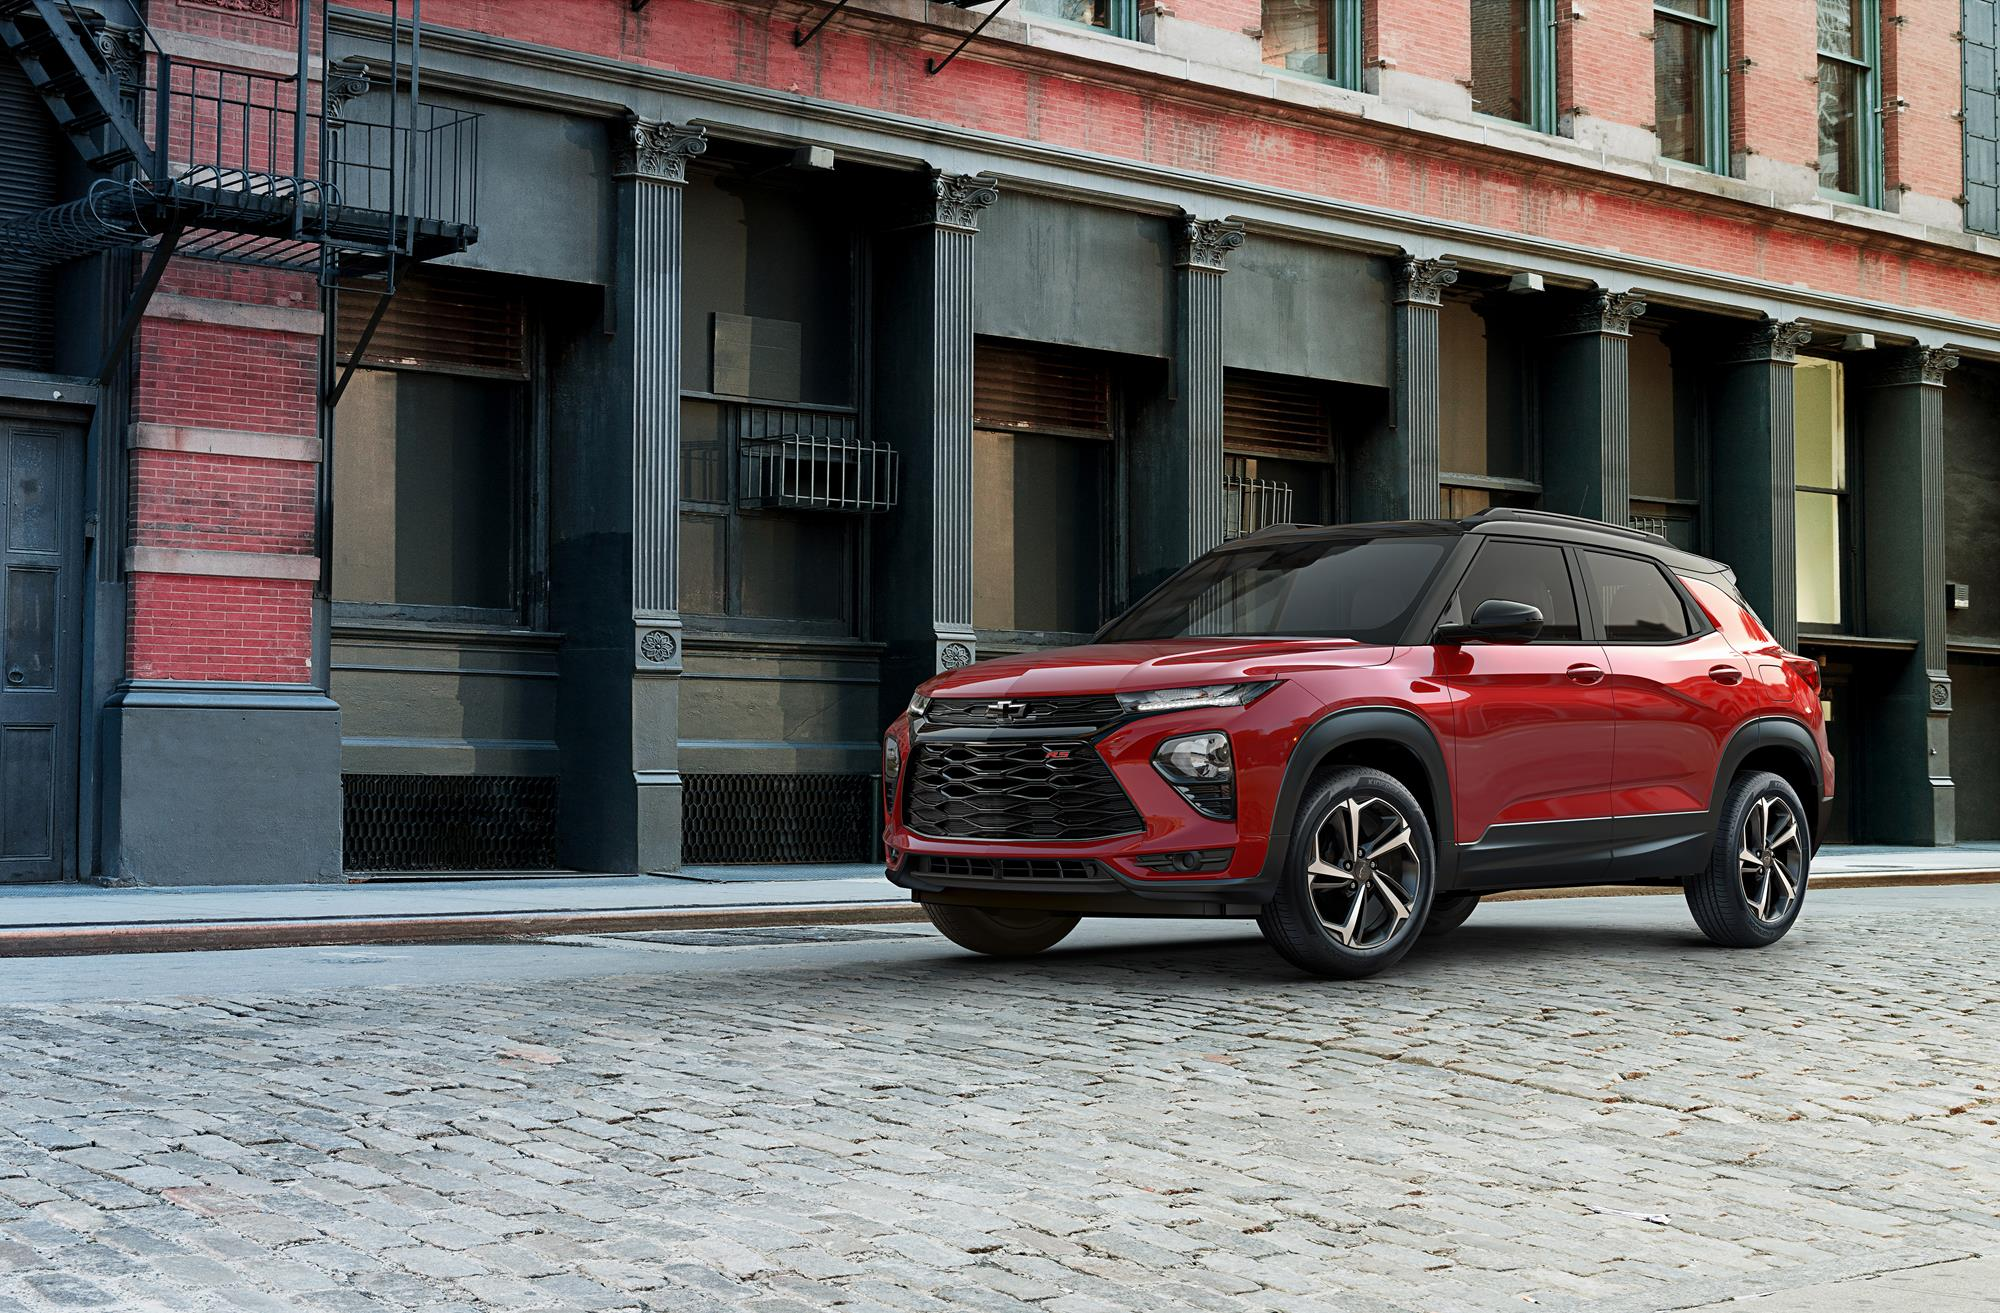 Chevrolet Unveils All-New 2021 Trailblazer SUV - CarNewsCafe